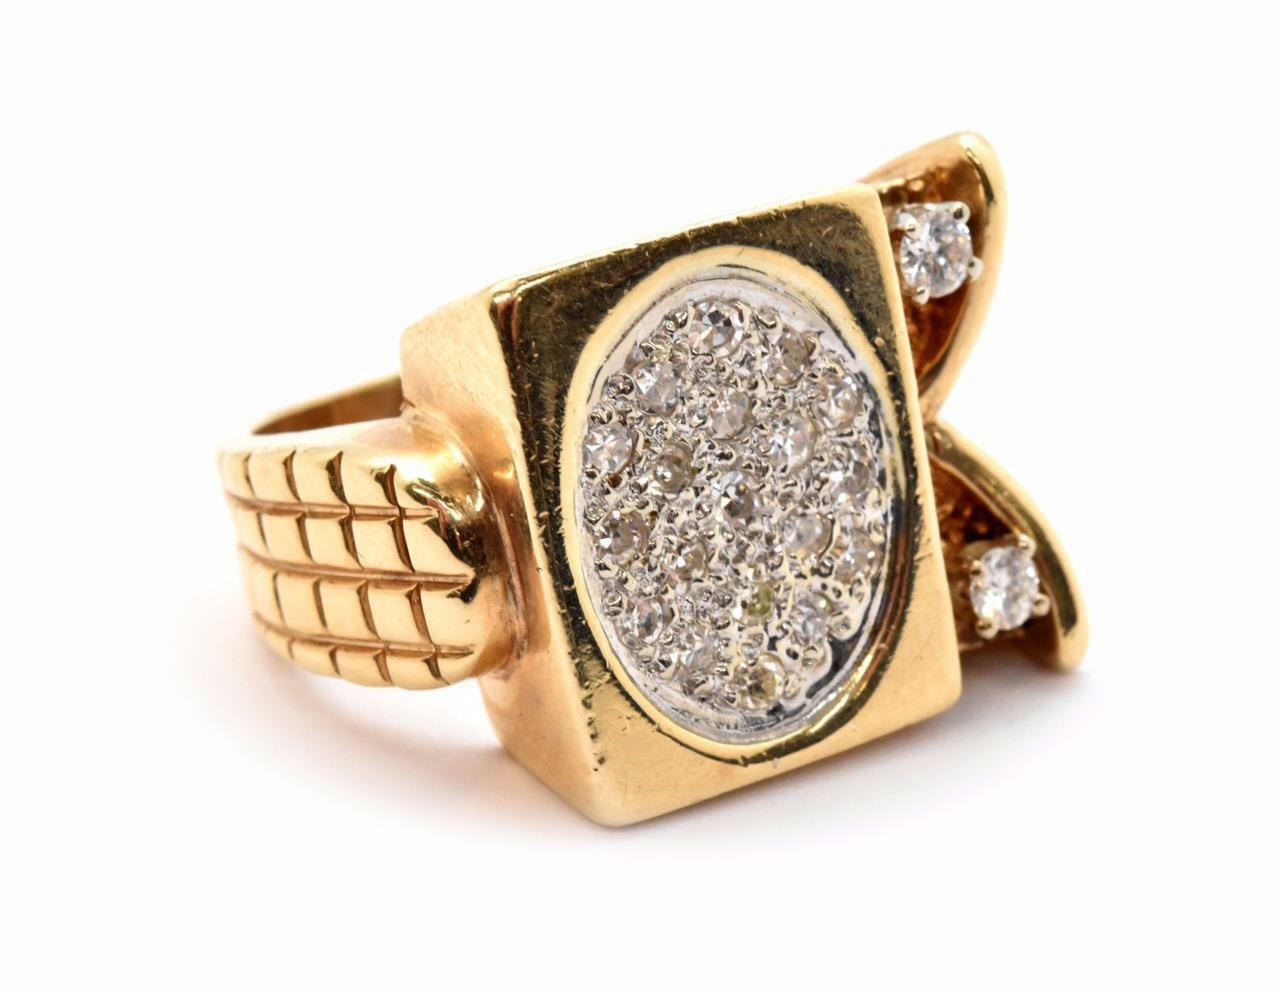 14k Yellow gold and 0.64cttw Diamond Fashion Ring Size 12